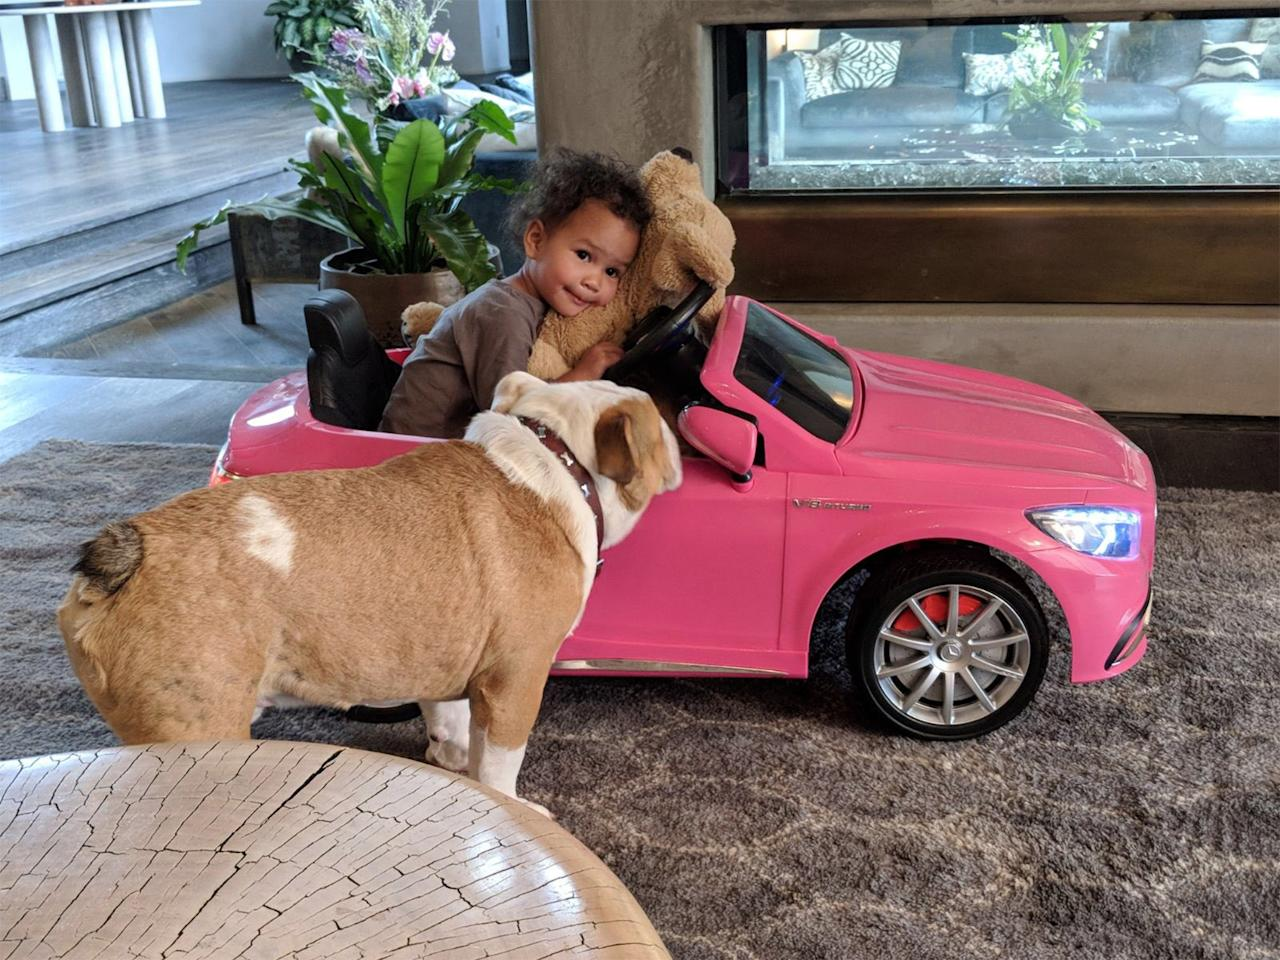 Miles' sister Luna has a Mercedes of her own, though hers is hot pink and built for nap time.